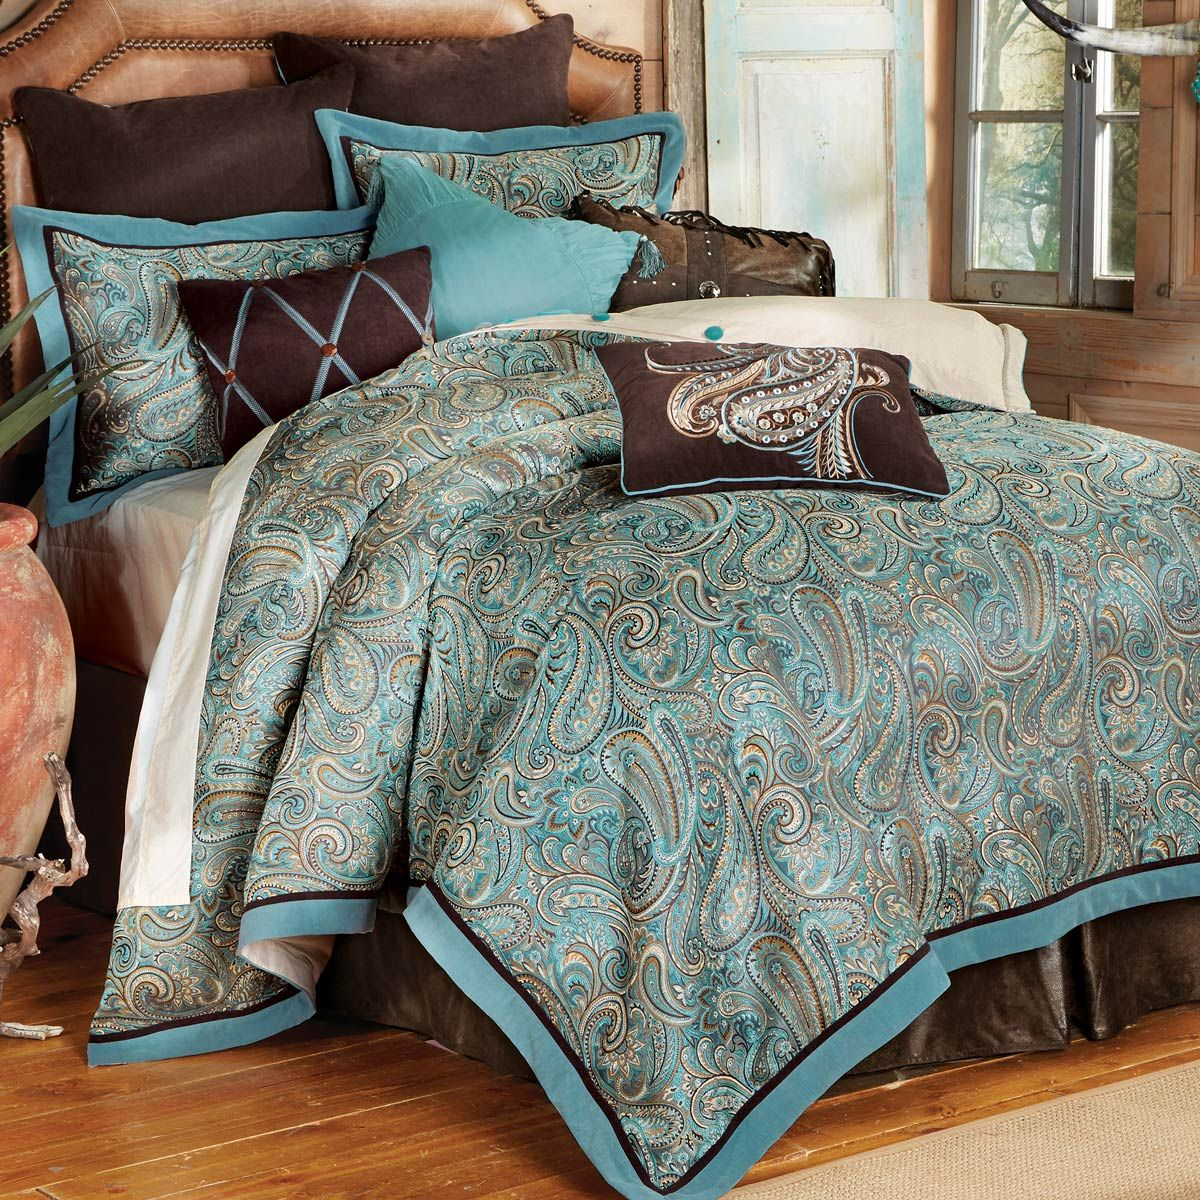 Western Bedding Cowboy Bed Sets At Lone Star Western